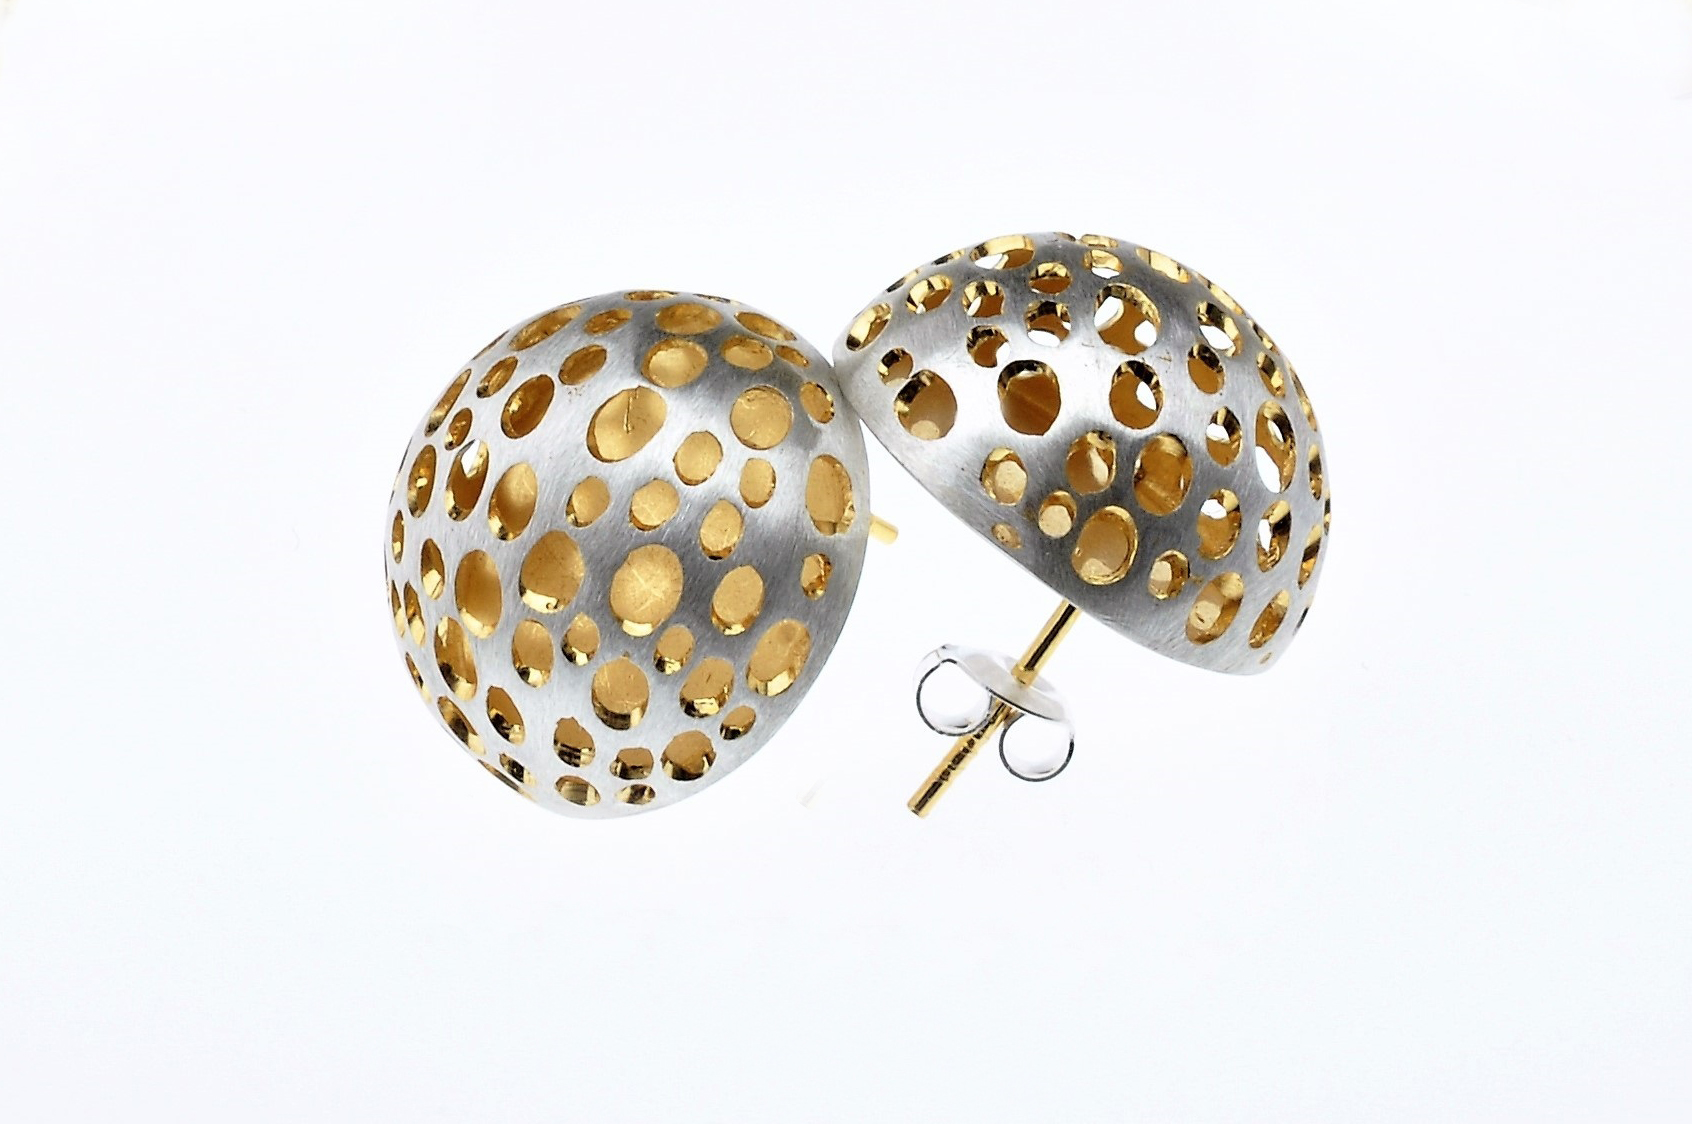 Posted Sterling Silver and Gold Vermeil Earrings - BAS55E -  Sold